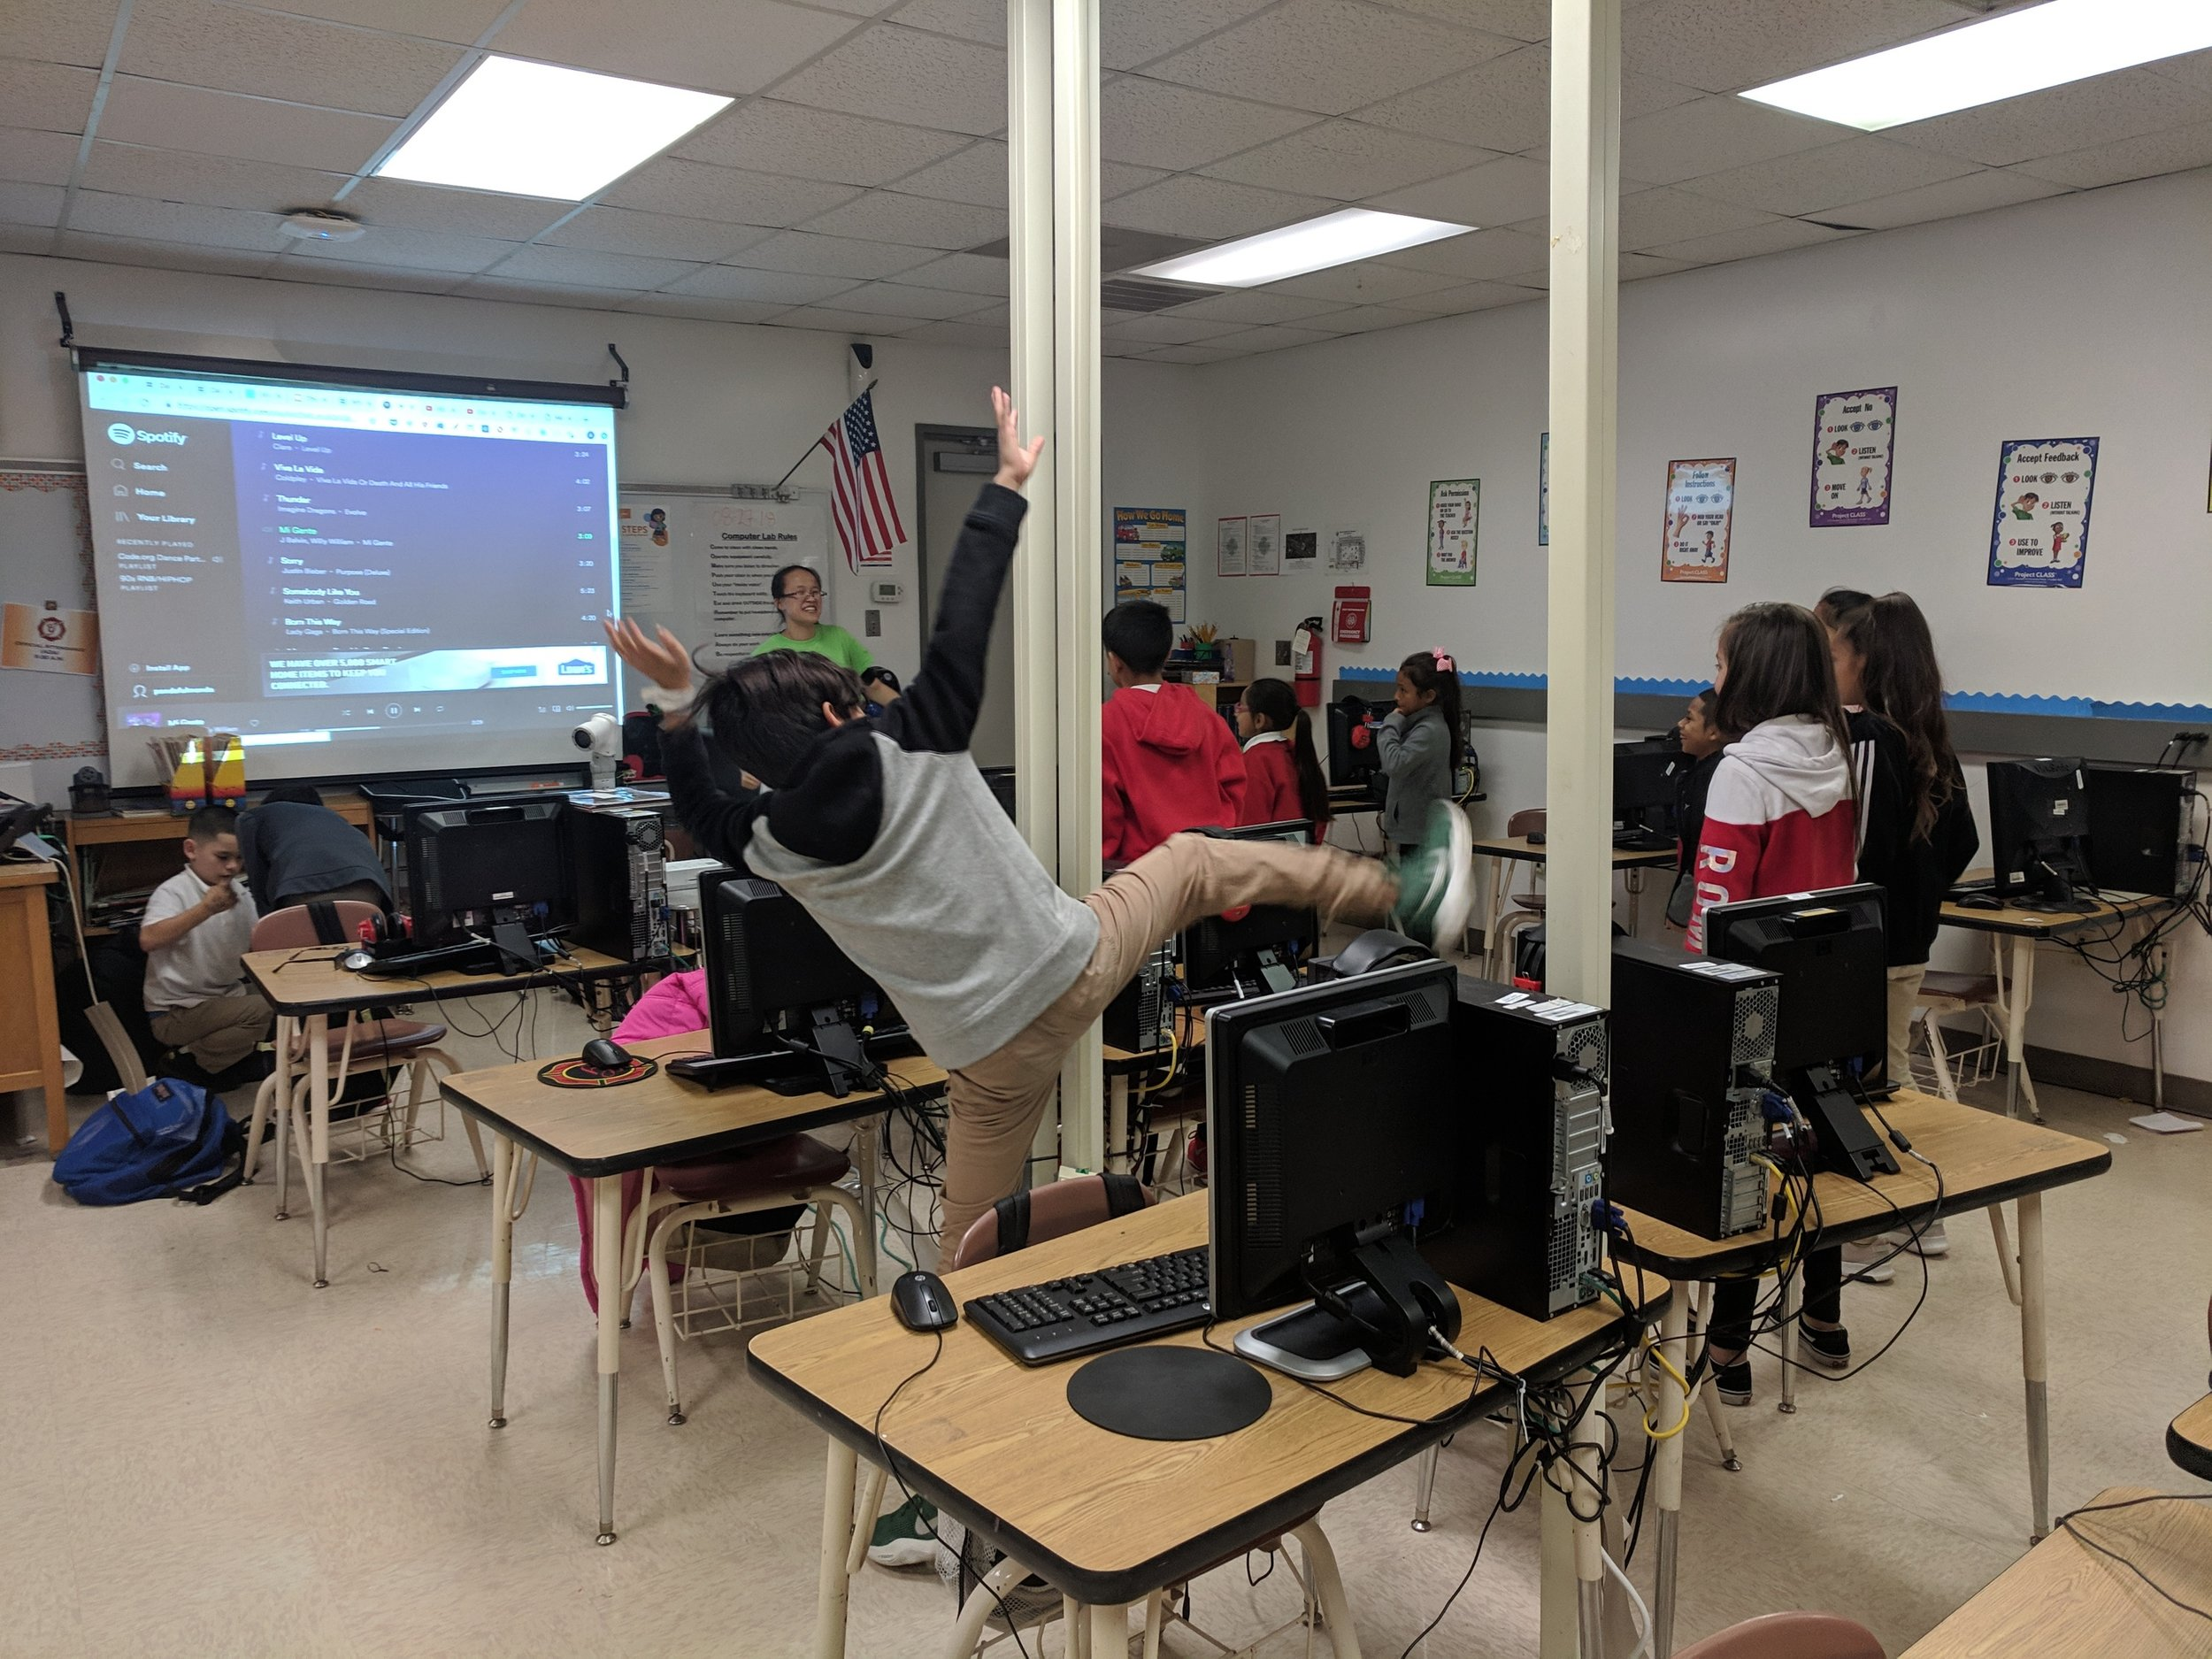 Students participated in the national CS Ed Tech week with Hour of Code Dance Party activity. They learned about events and coded characters in ways that surprised each other. Courtesy of Wanjun Zhang. December 4th, 2018.